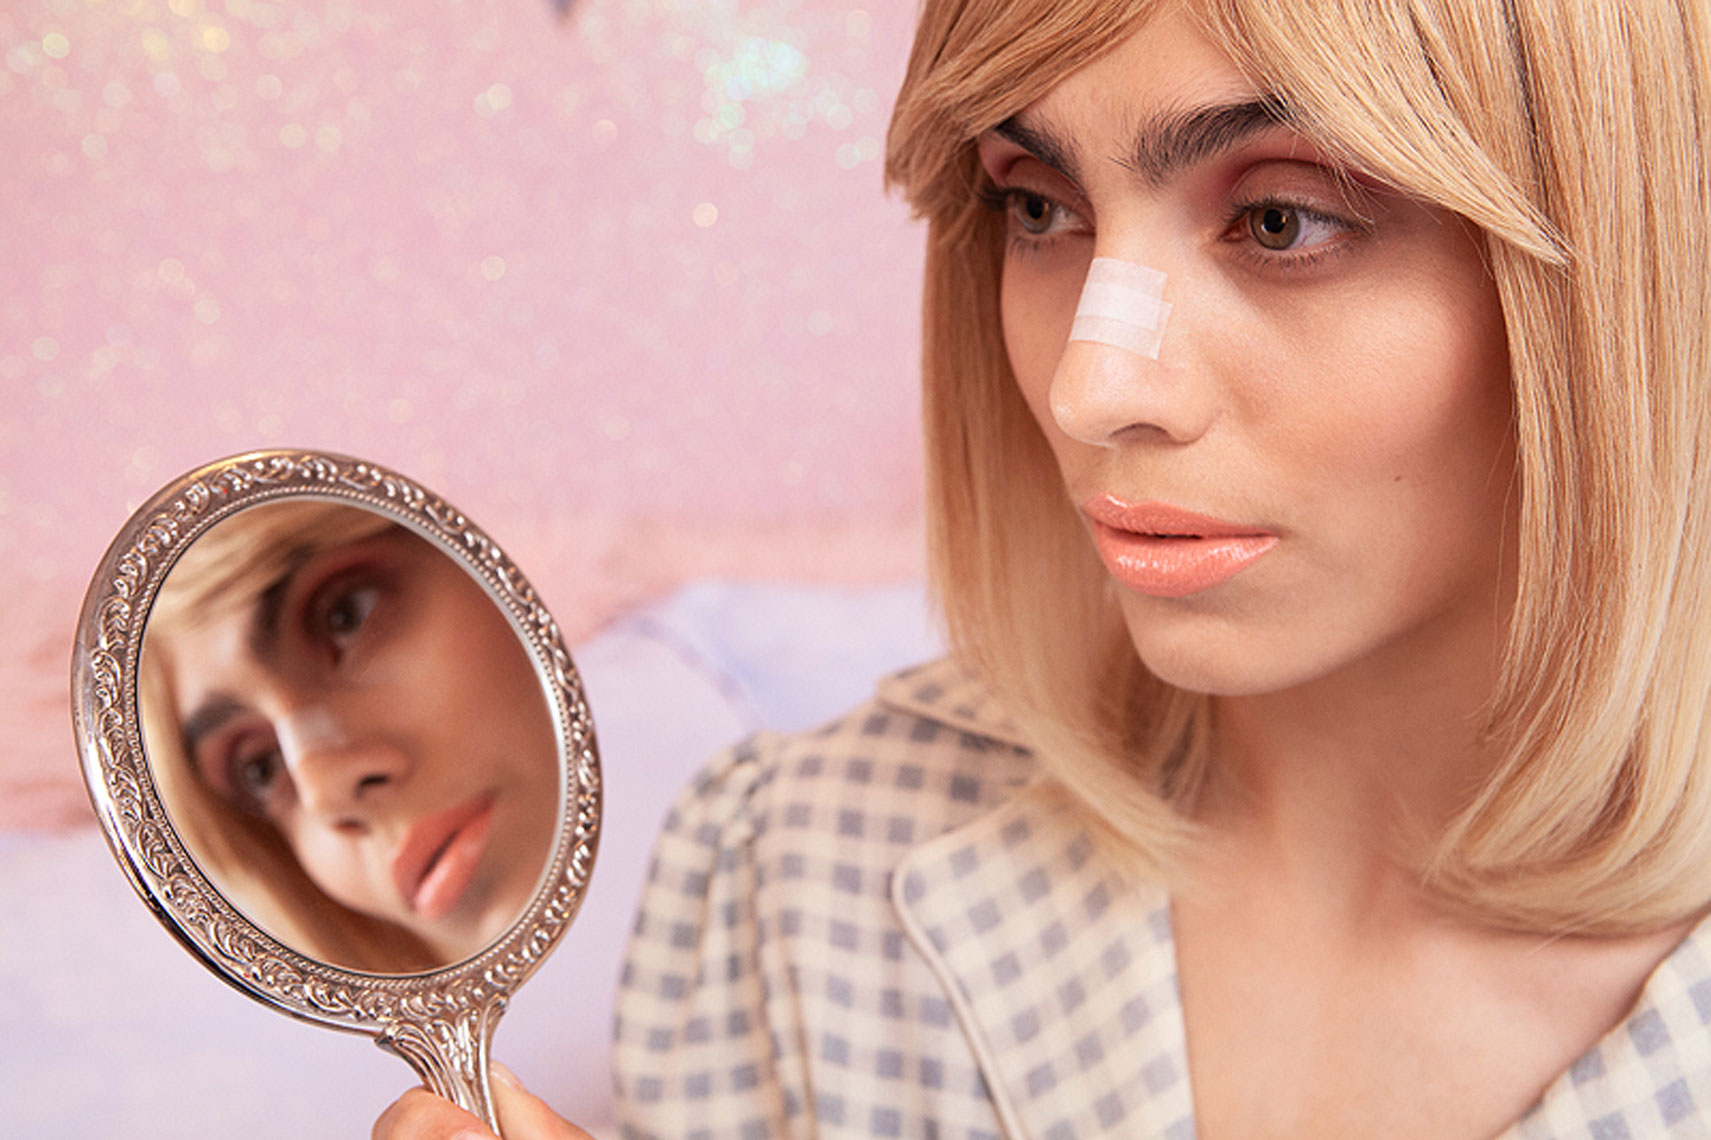 issie-gibbons-fashion-stylist-vogue-italia-eaton-house-pink-house-nose-job-mirror